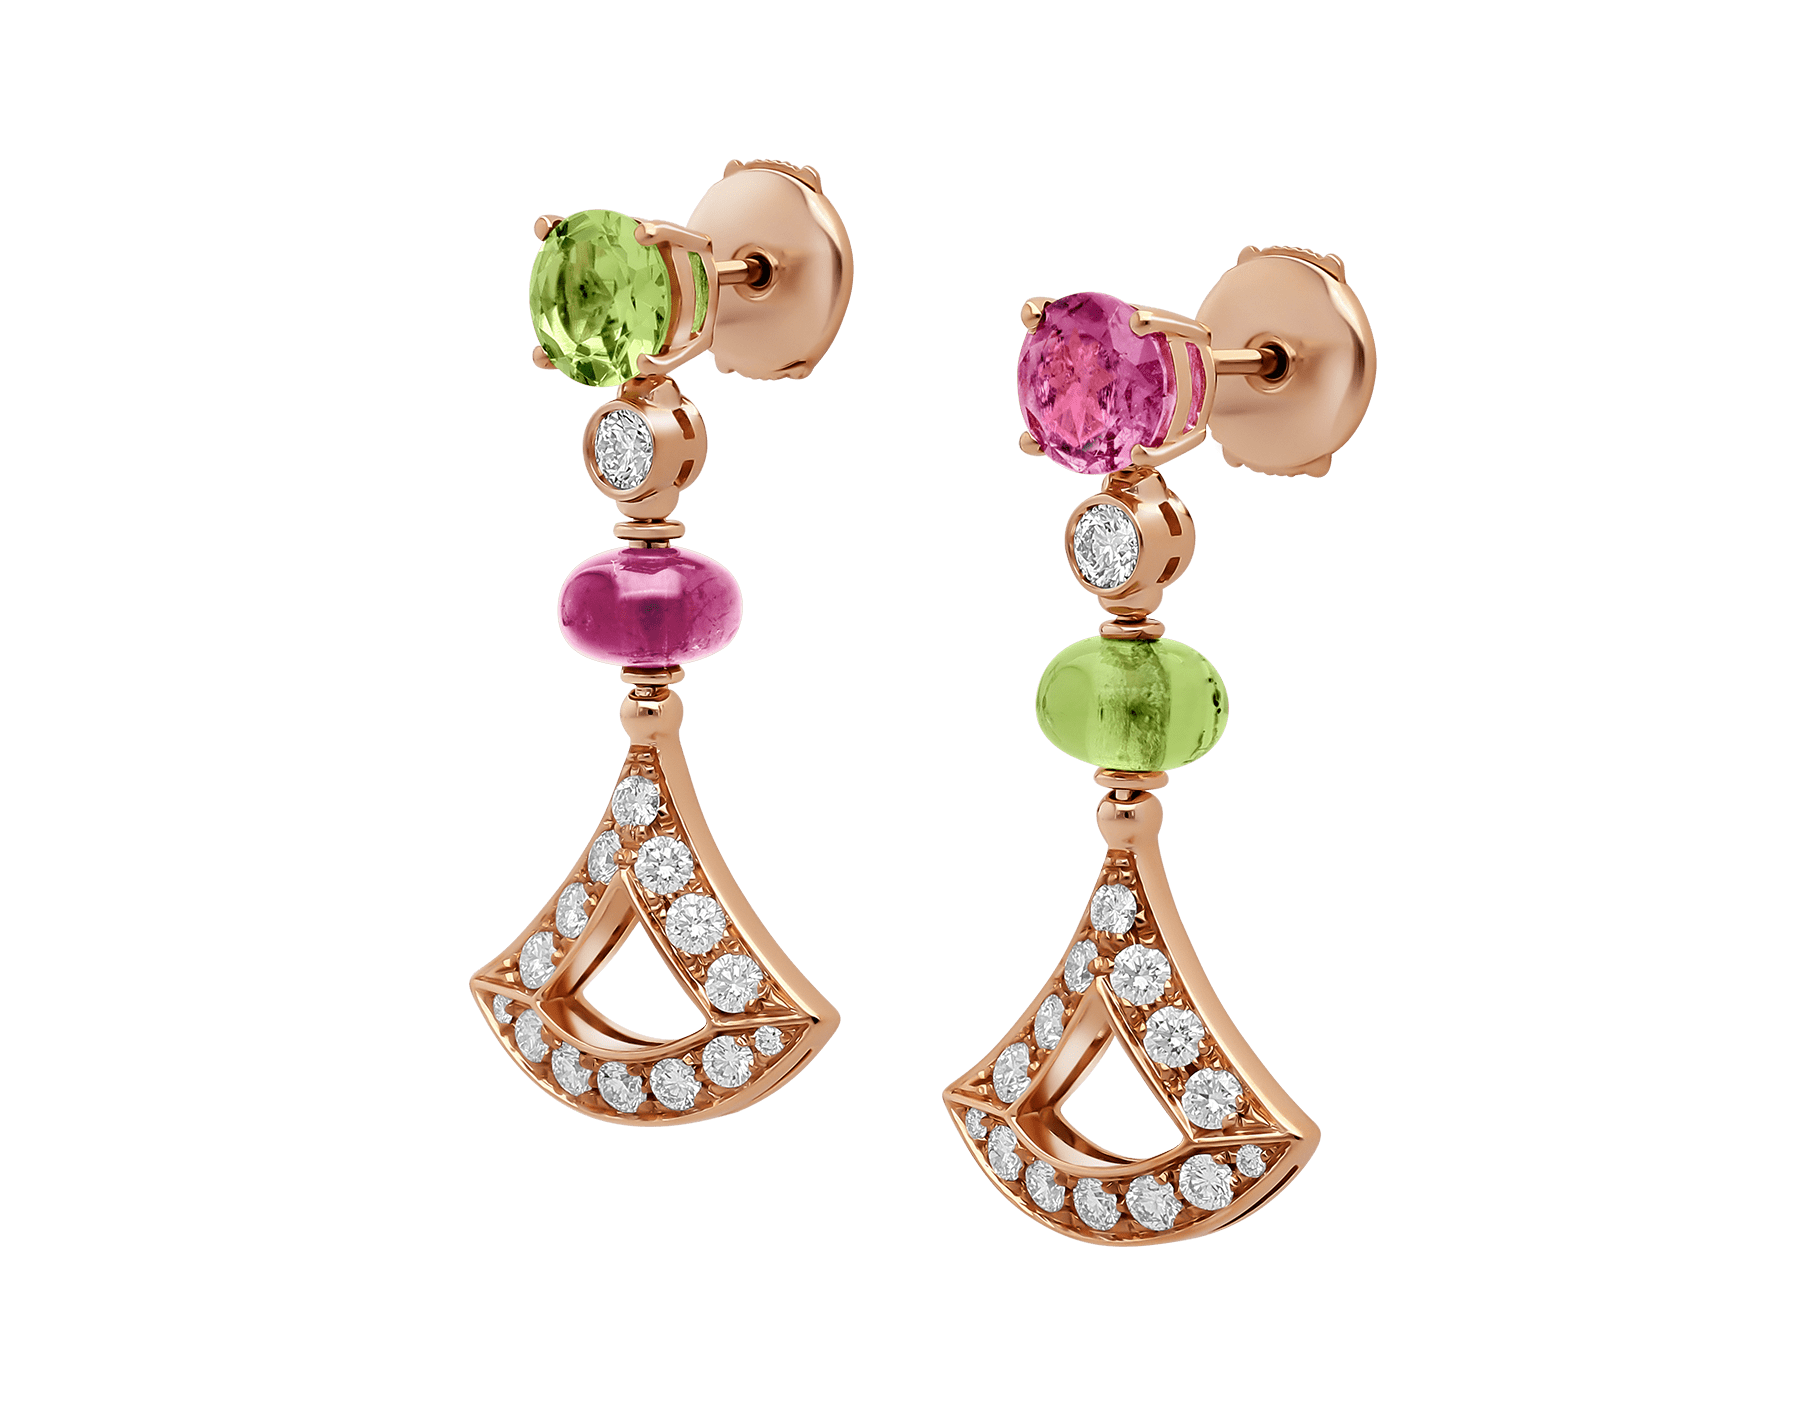 DIVAS' DREAM 18 kt rose gold earrings set with coloured gemstones and pavé diamonds 355616 image 2